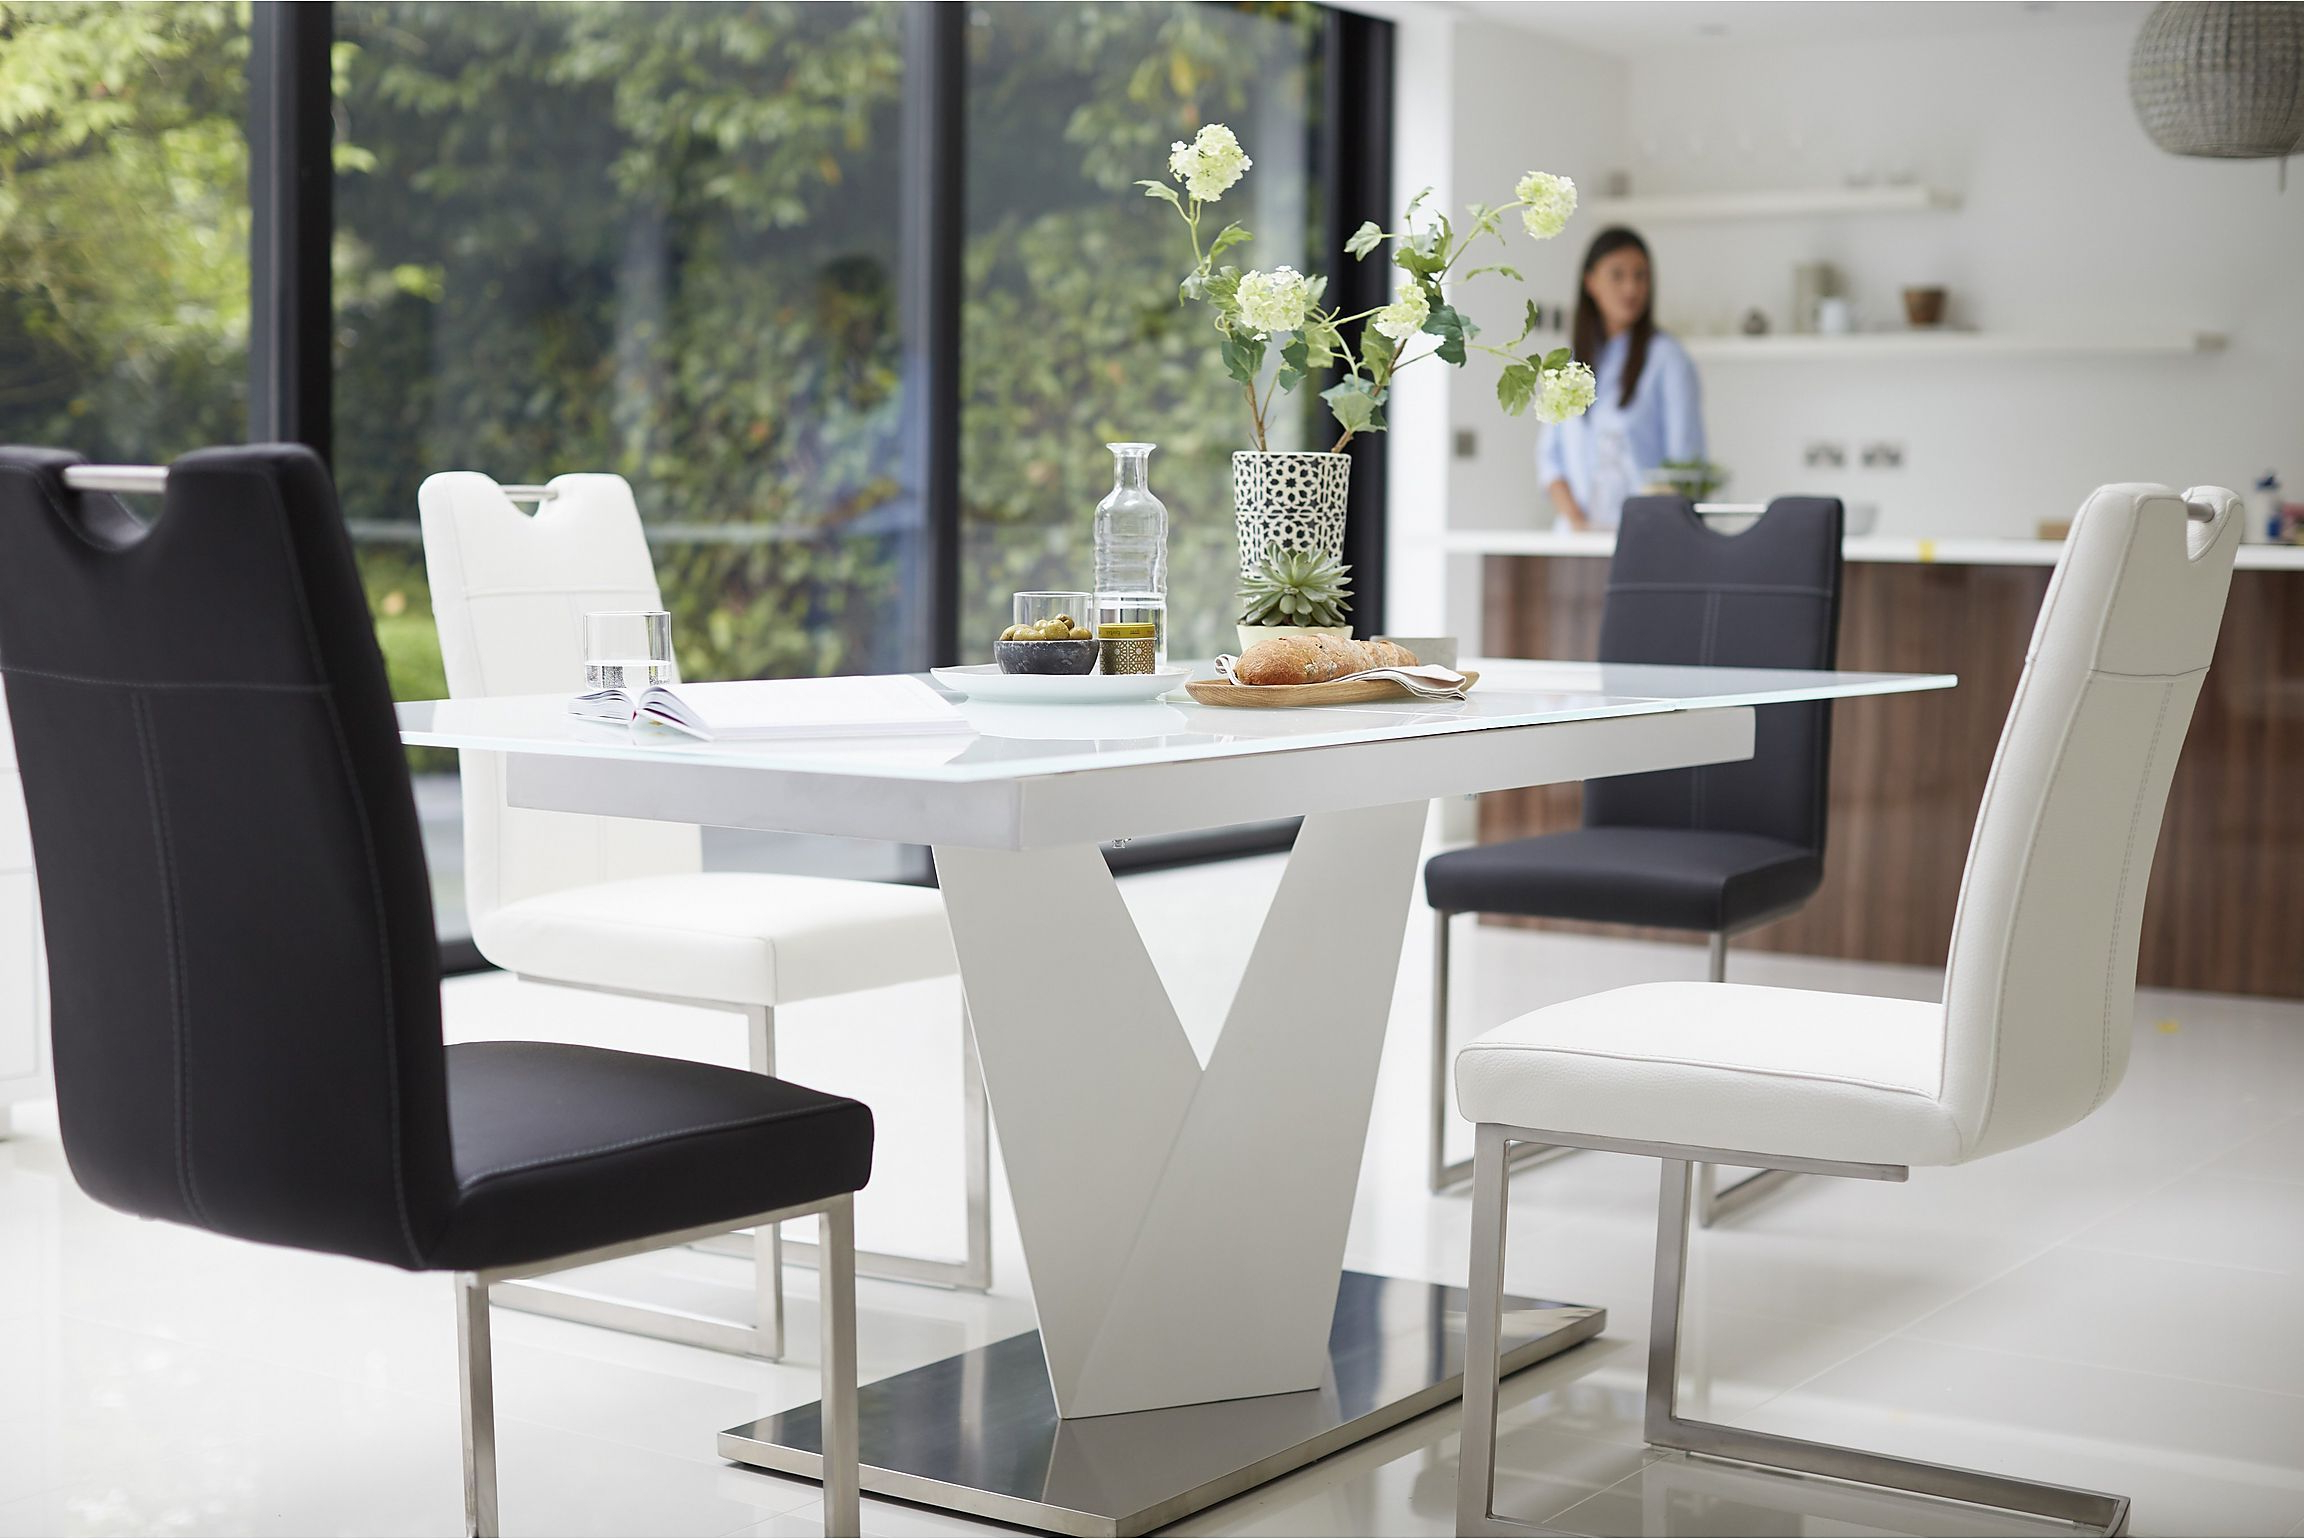 Extending Ultra Modern Dining Table From Habufa Sits Up To 8 Pertaining To Well Known Modern Glass Top Extension Dining Tables In Stainless (View 2 of 25)